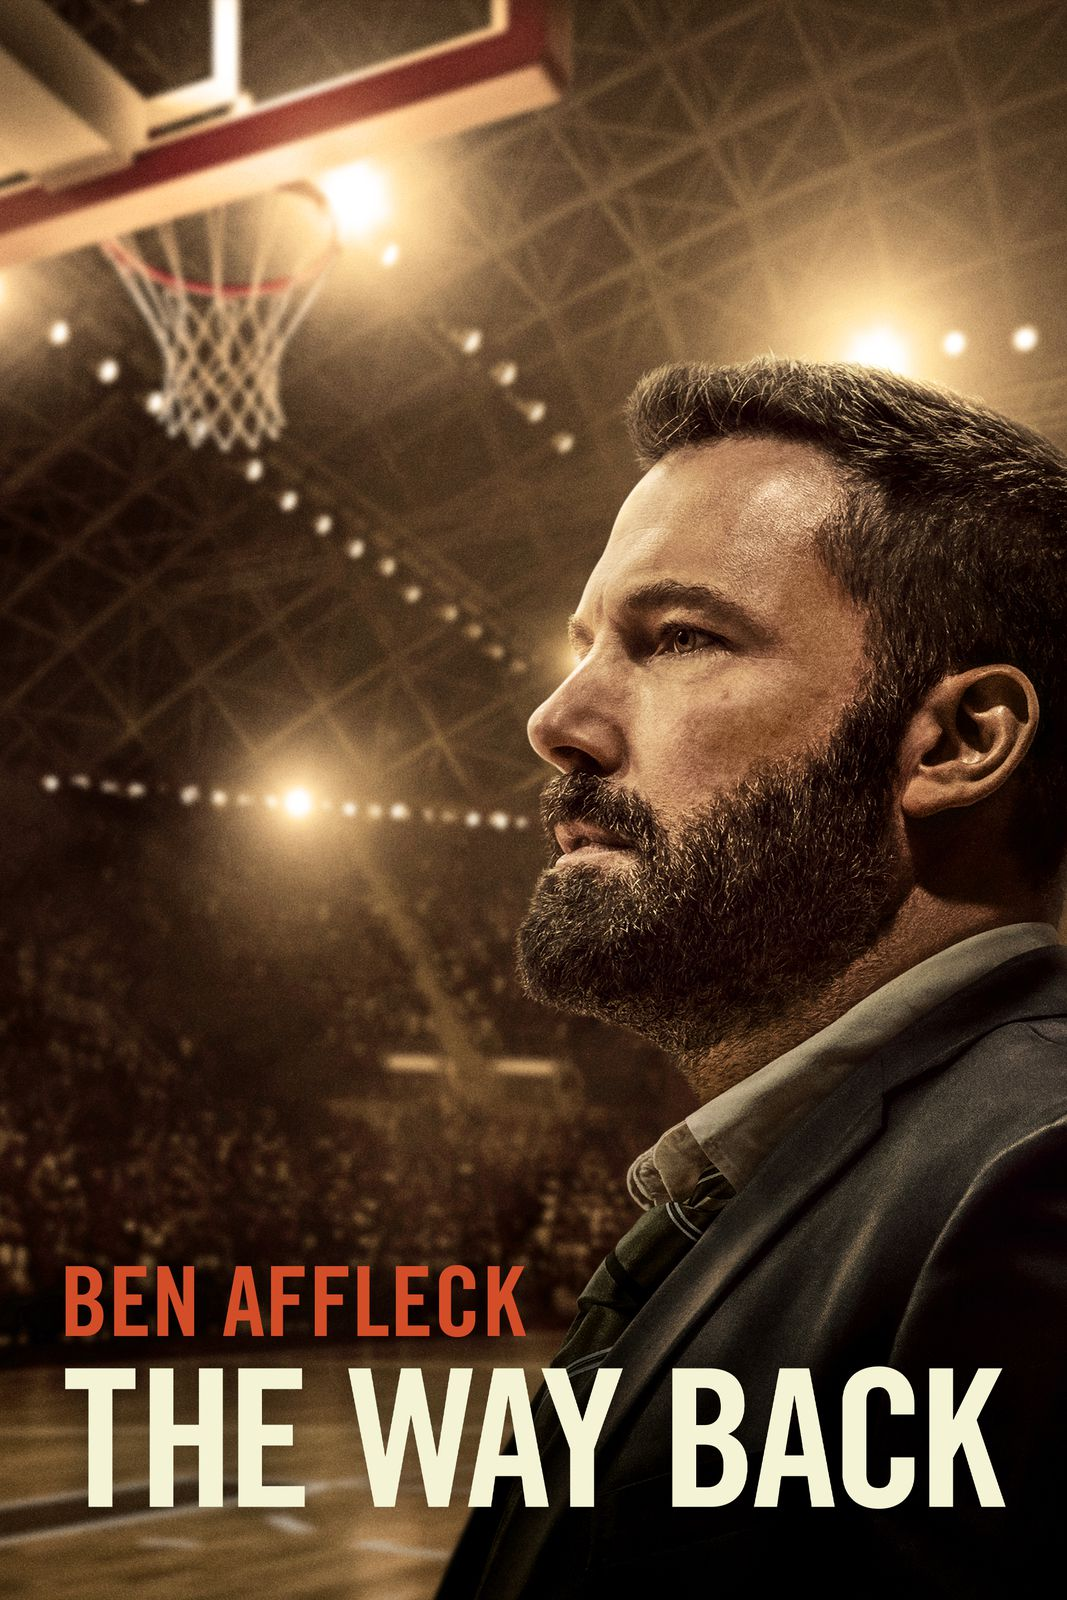 #CINEMA - THE WAY BACK AVEC BEN AFFLECK - LE 3 AOÛT EN LOCATION ET  VOD !